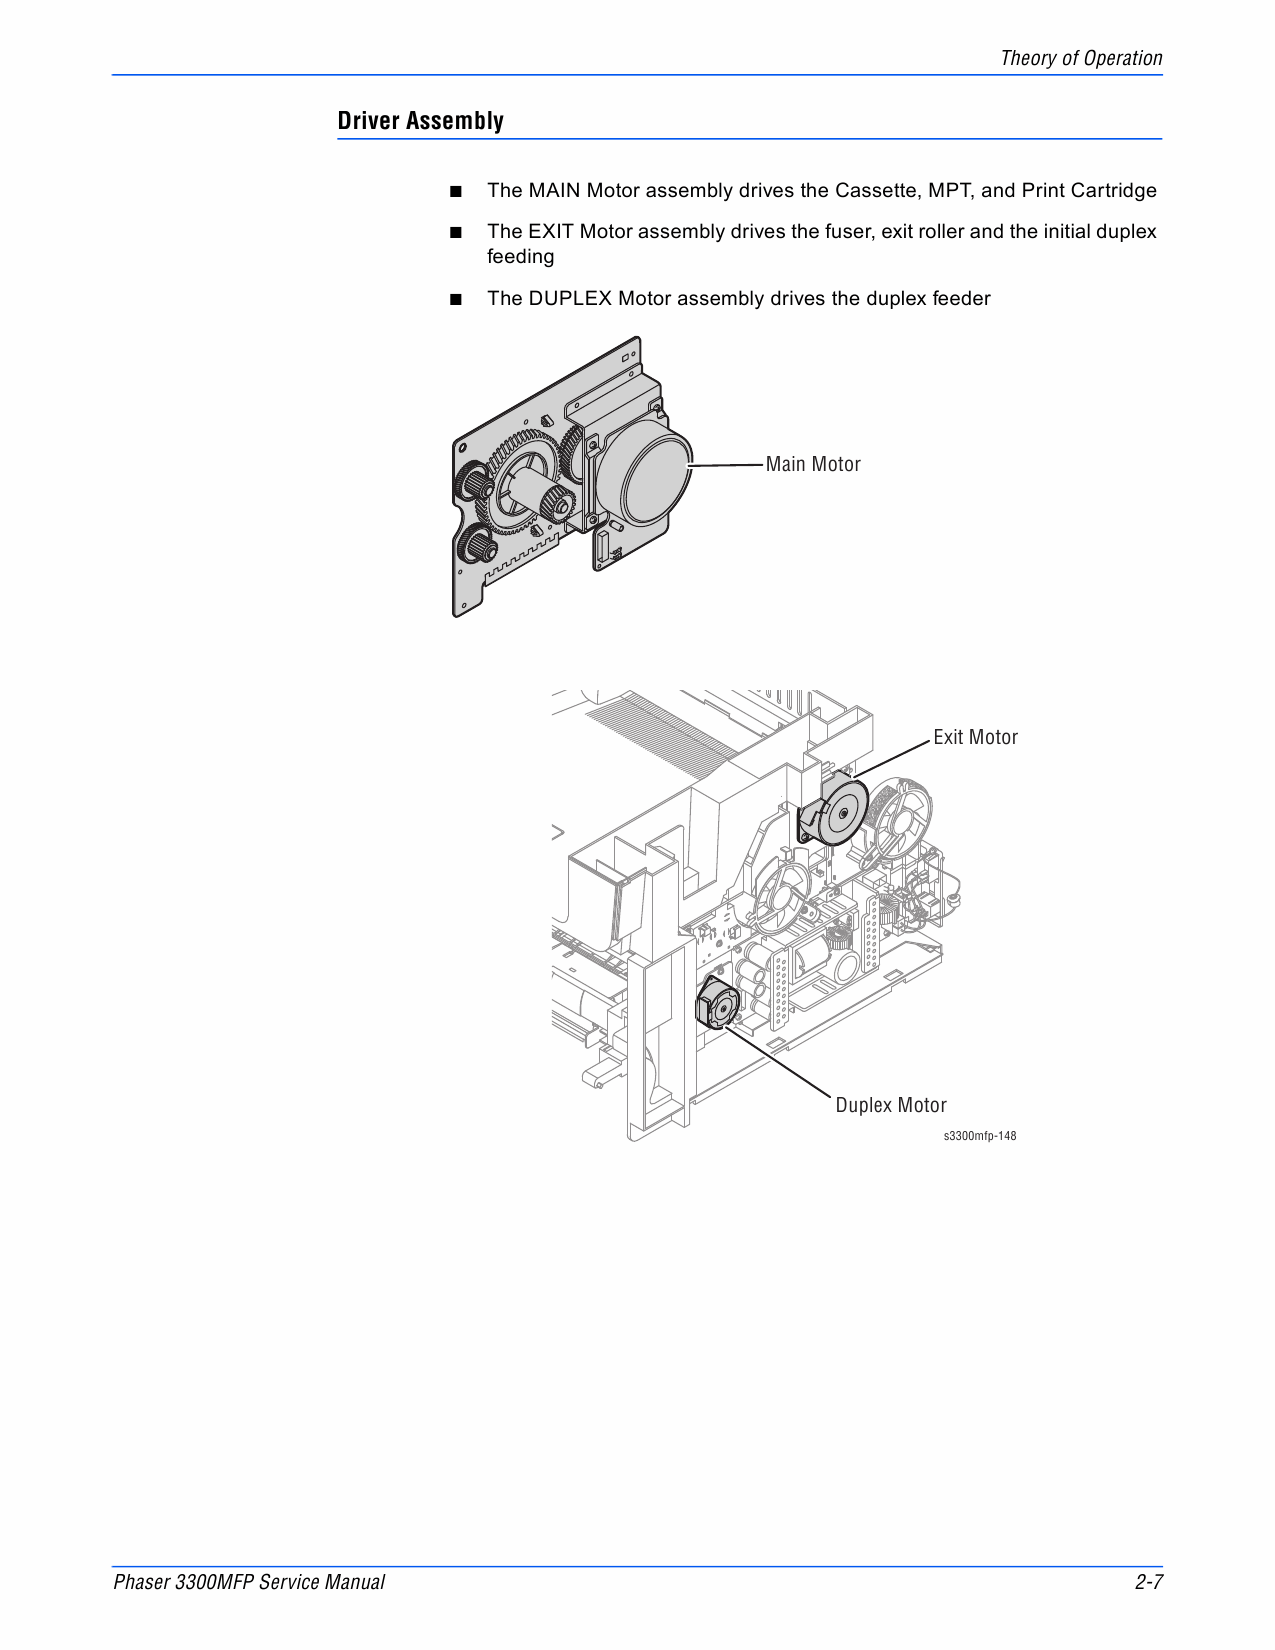 Xerox Service Manual Auto Electrical Wiring Diagram Block Xeroxwc3045 Phaser 3300 Mfp Parts List And